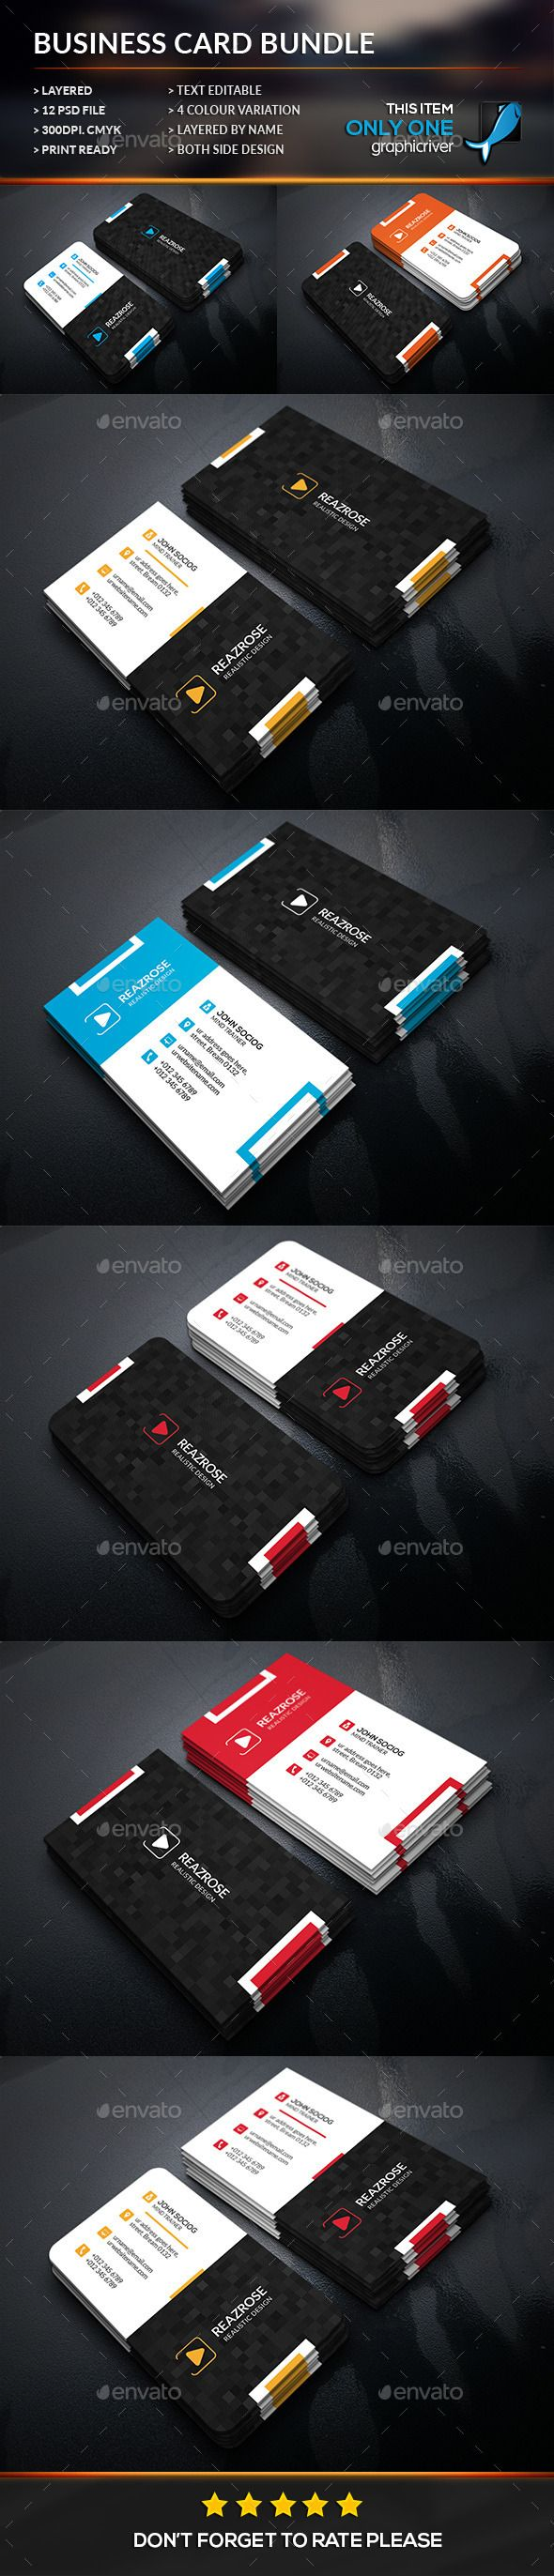 11 best Vape Business Card images on Pinterest | Business cards ...